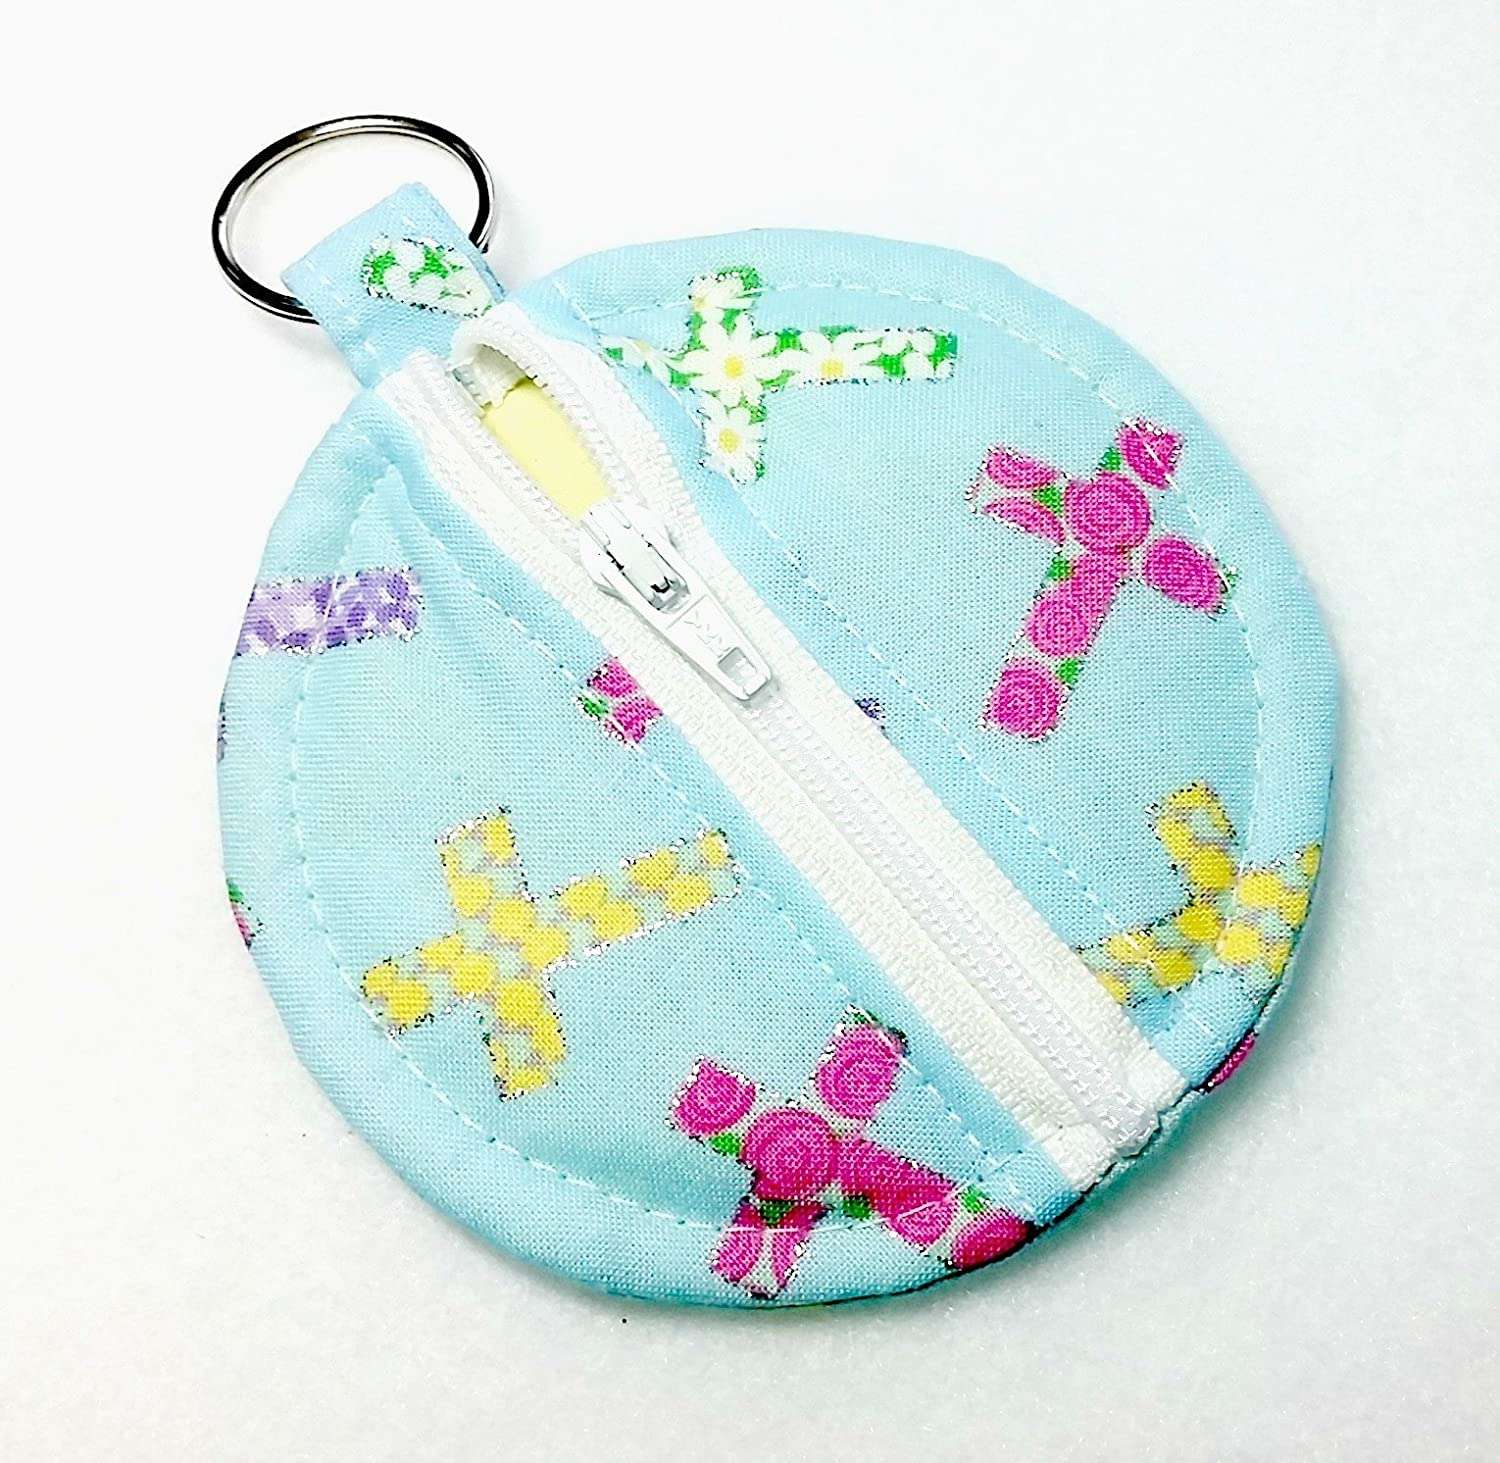 Pastel Crosses Earbud Zippered Pouch